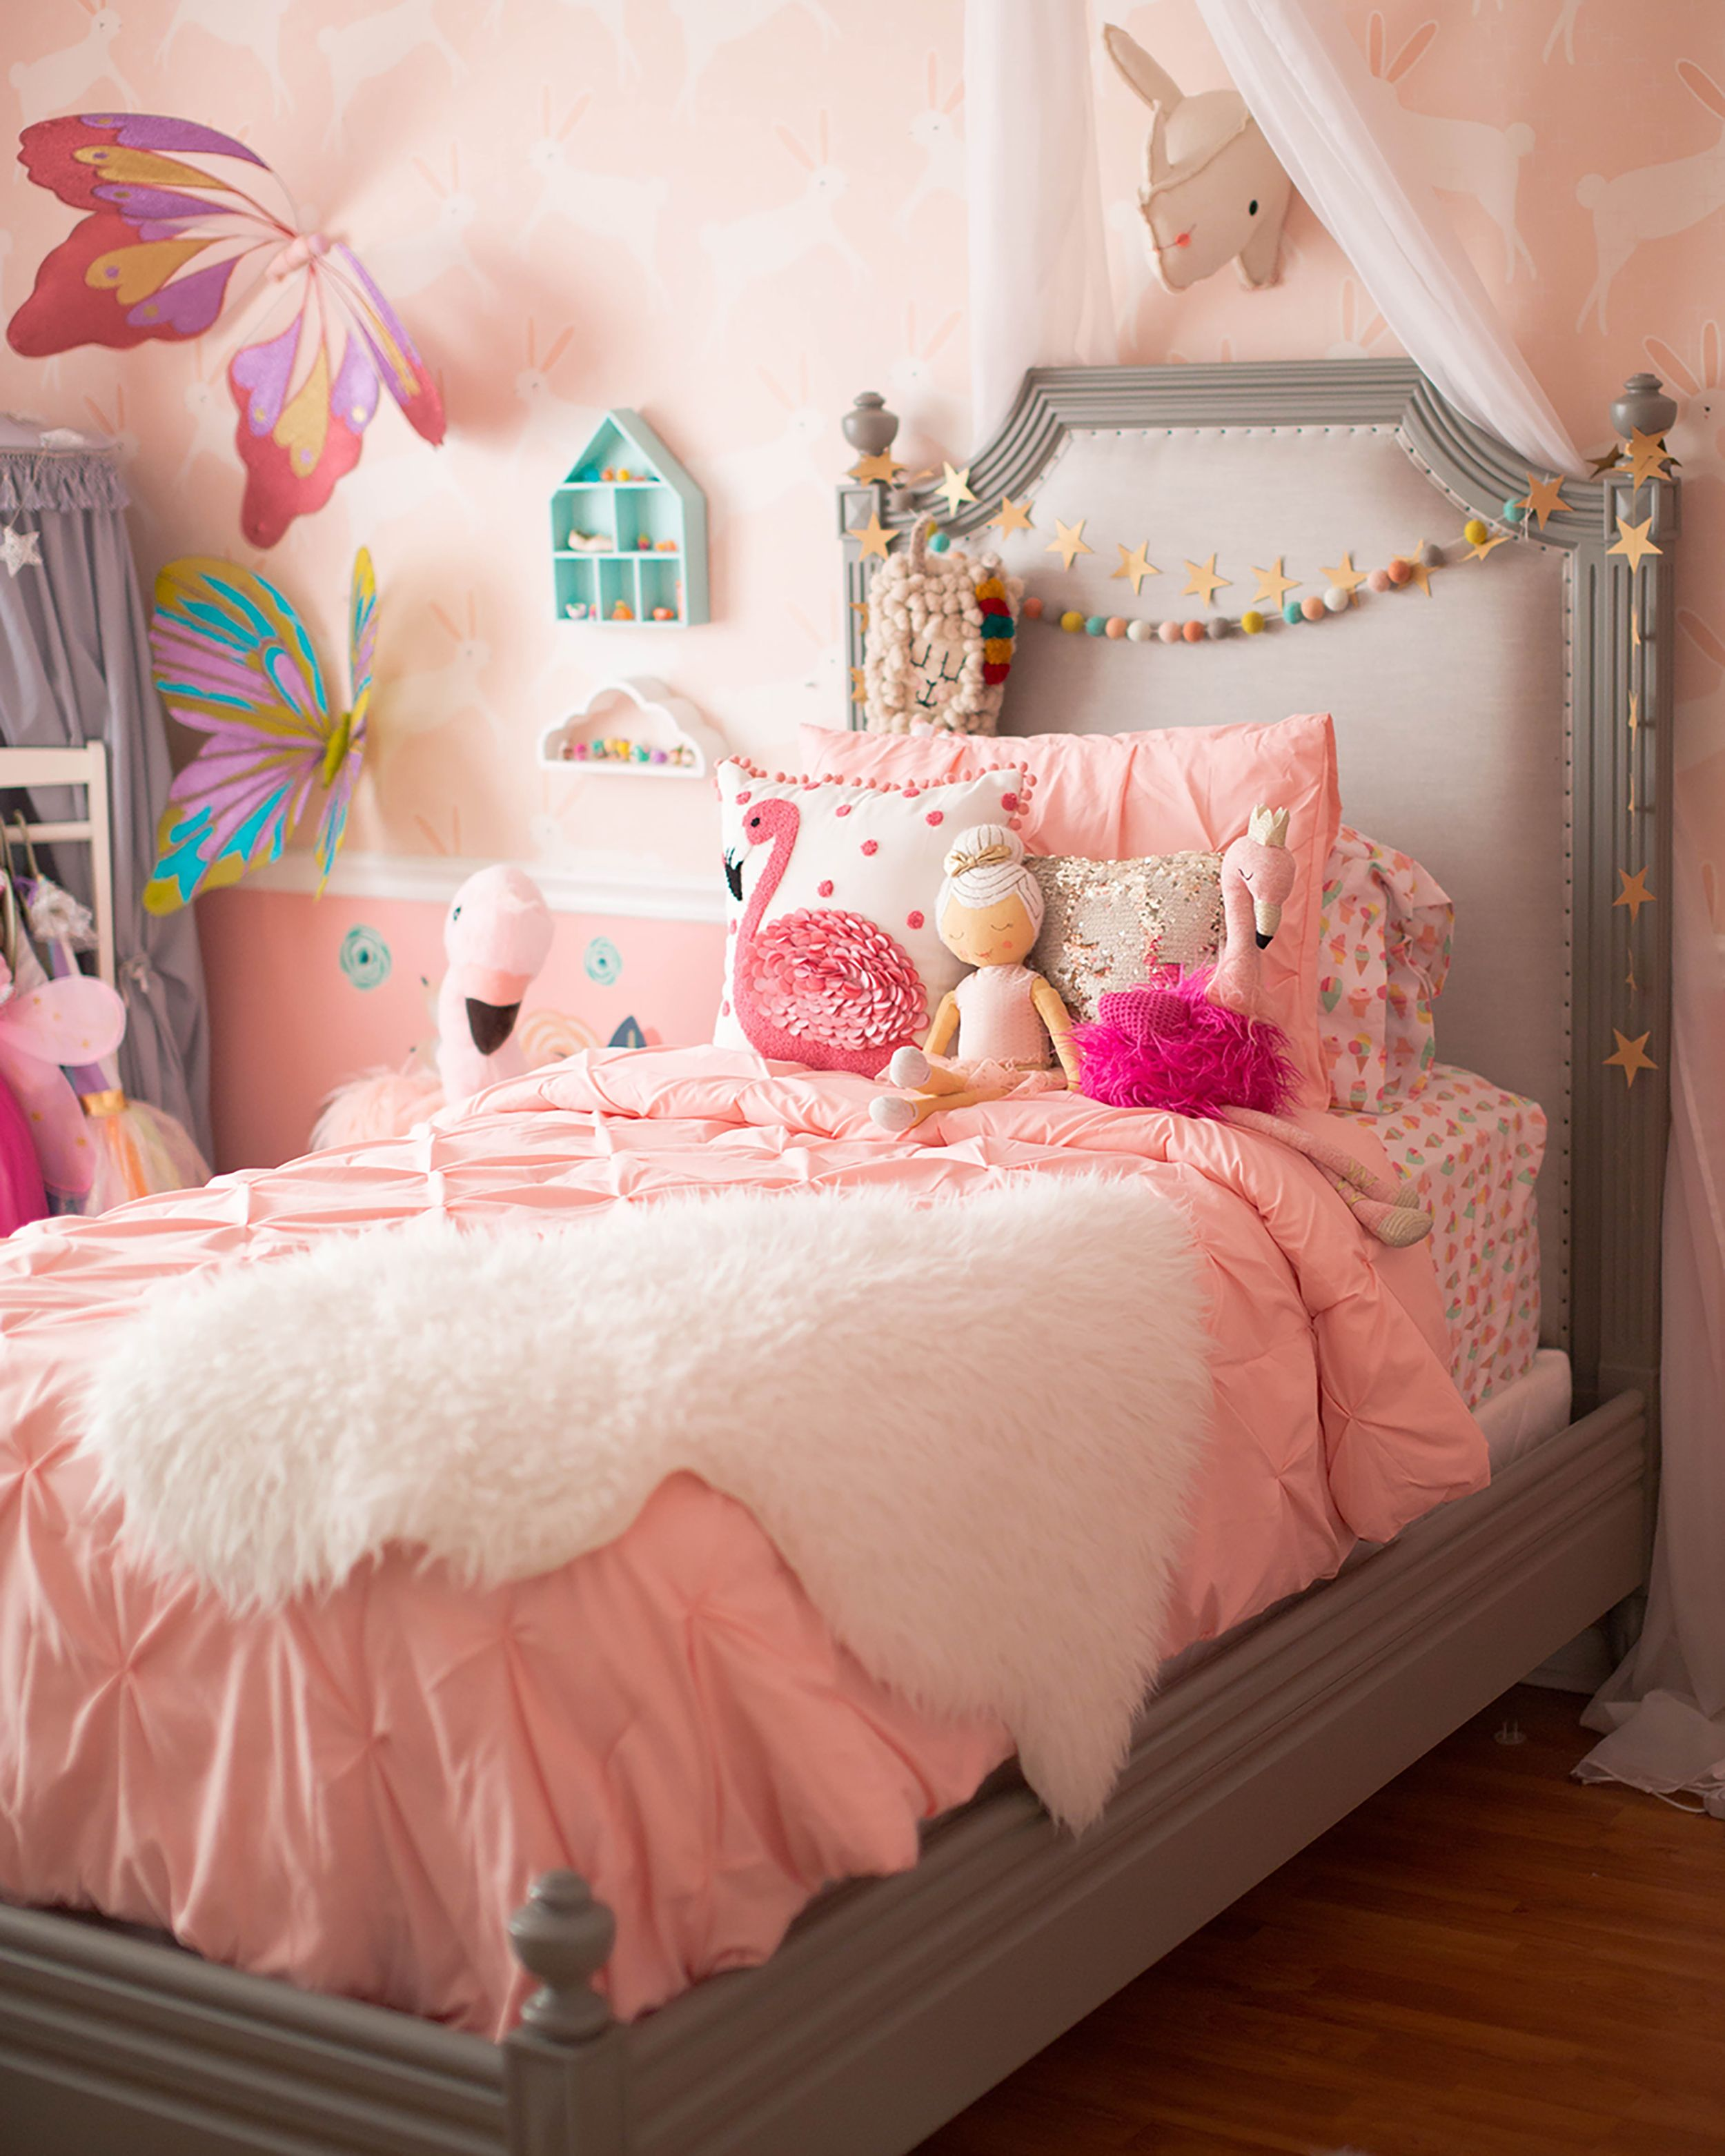 Even the tiniest princesses need a place for sweet dreams